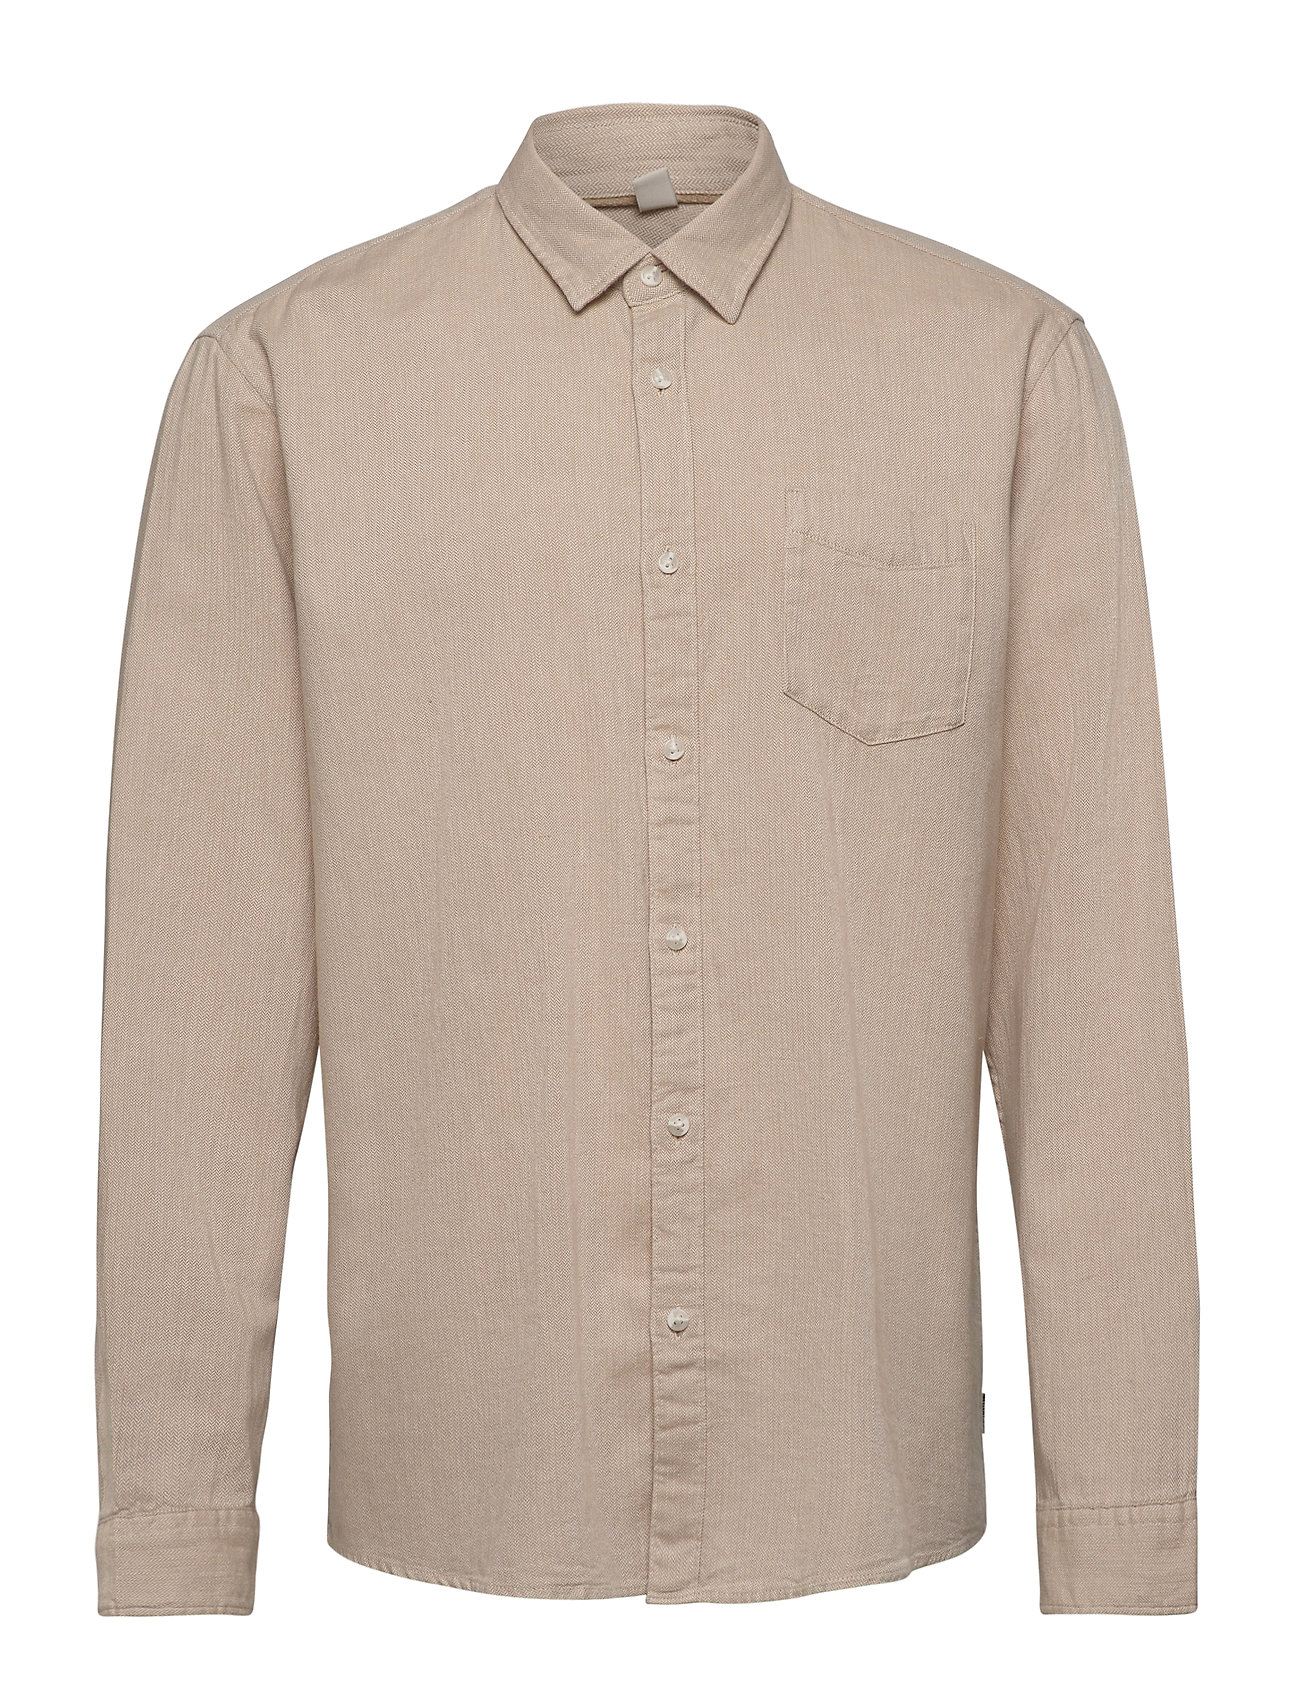 Image of Shirts Woven Skjorte Casual Brun Esprit Casual (3457409209)